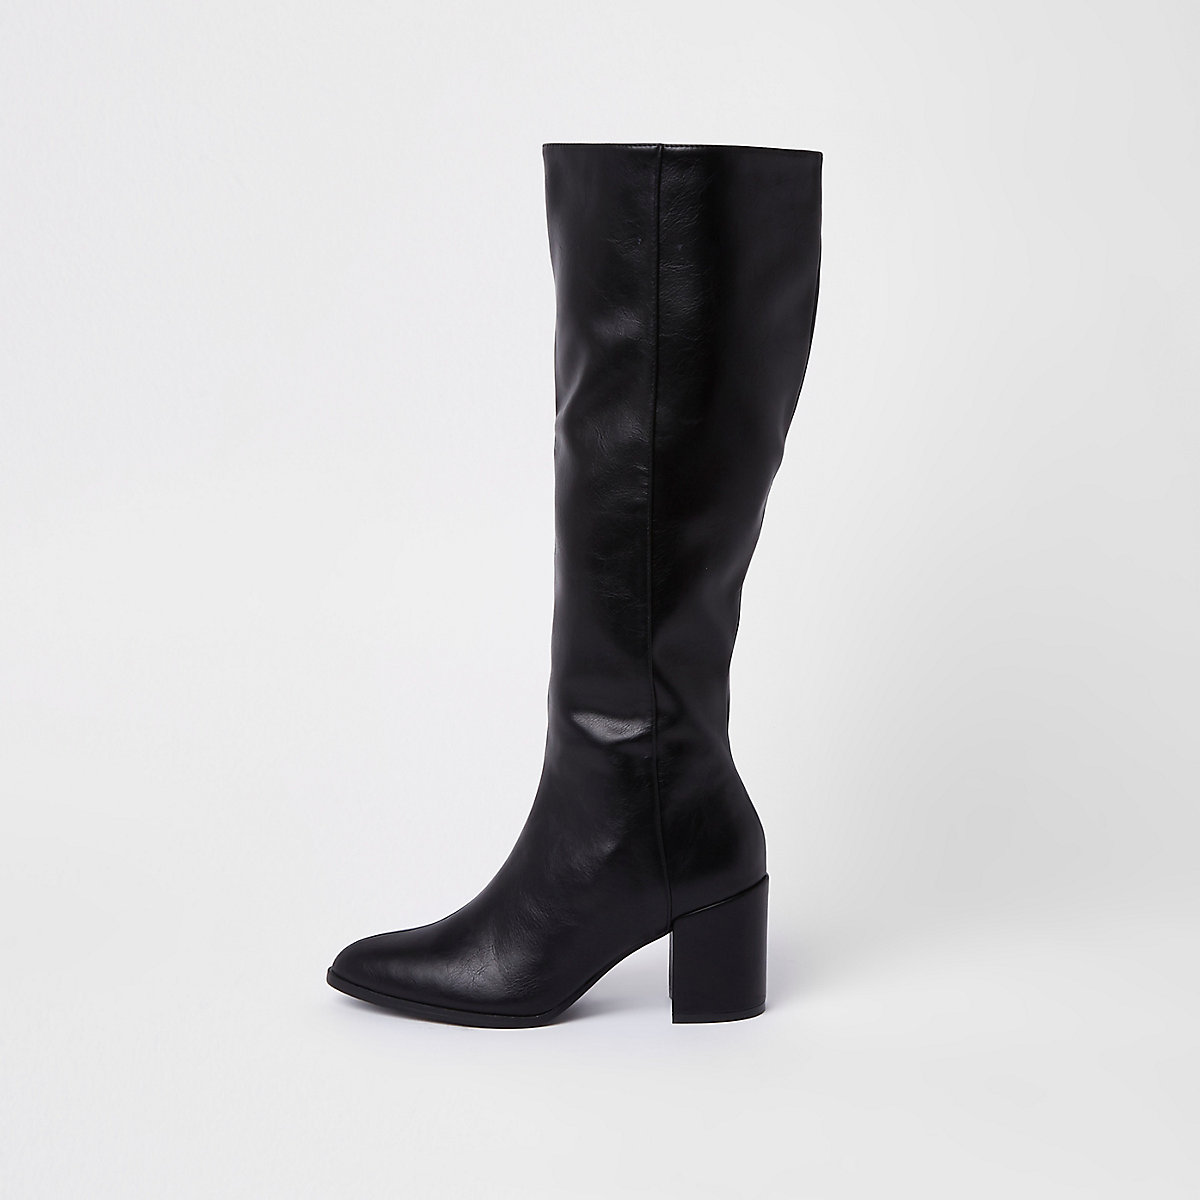 Black faux leather knee high boots